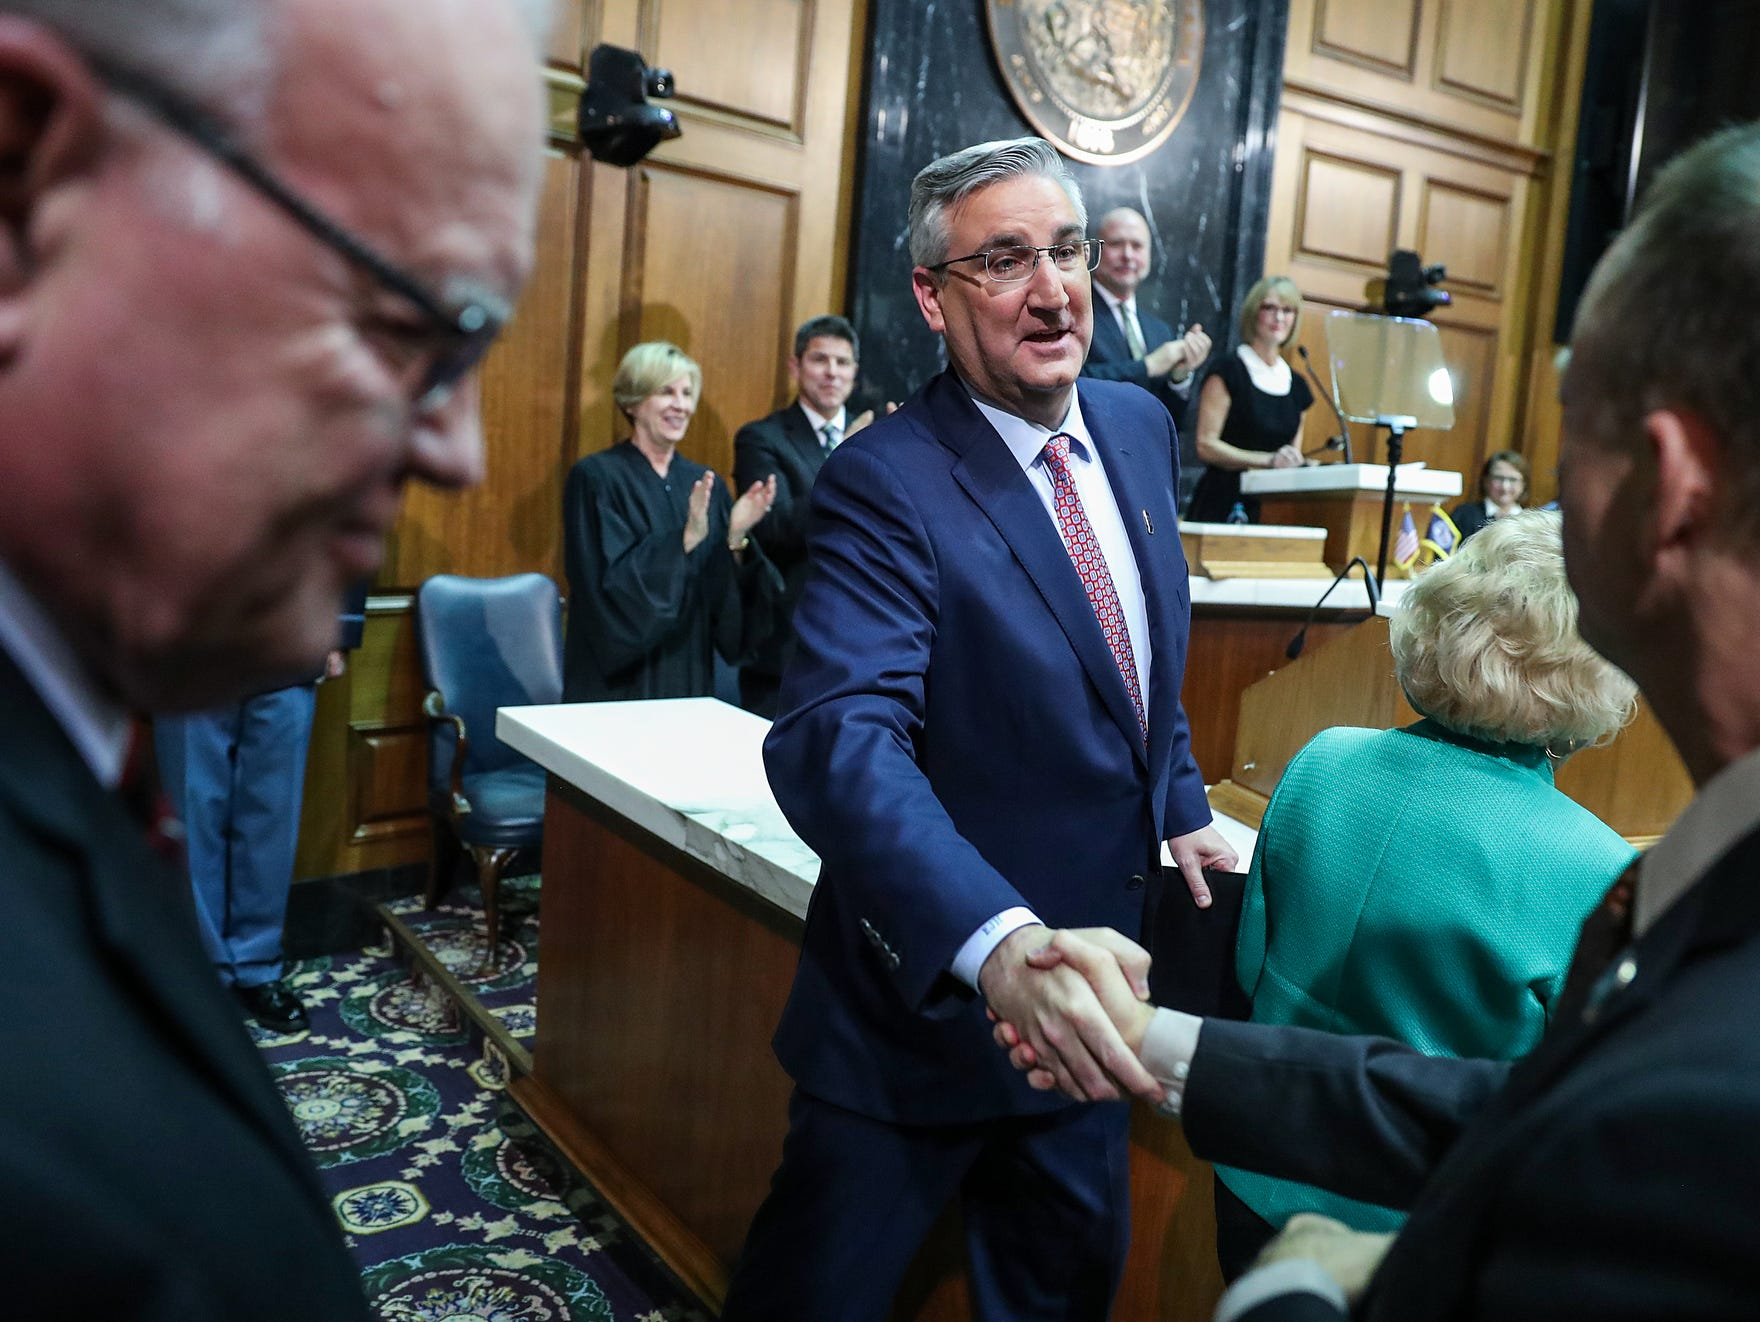 Gov. Eric Holcomb greets members of the crowd after delivering the annual State of the State address to the Indiana General Assembly at the Indiana Statehouse in Indianapolis, Tuesday, Jan. 15, 2019.